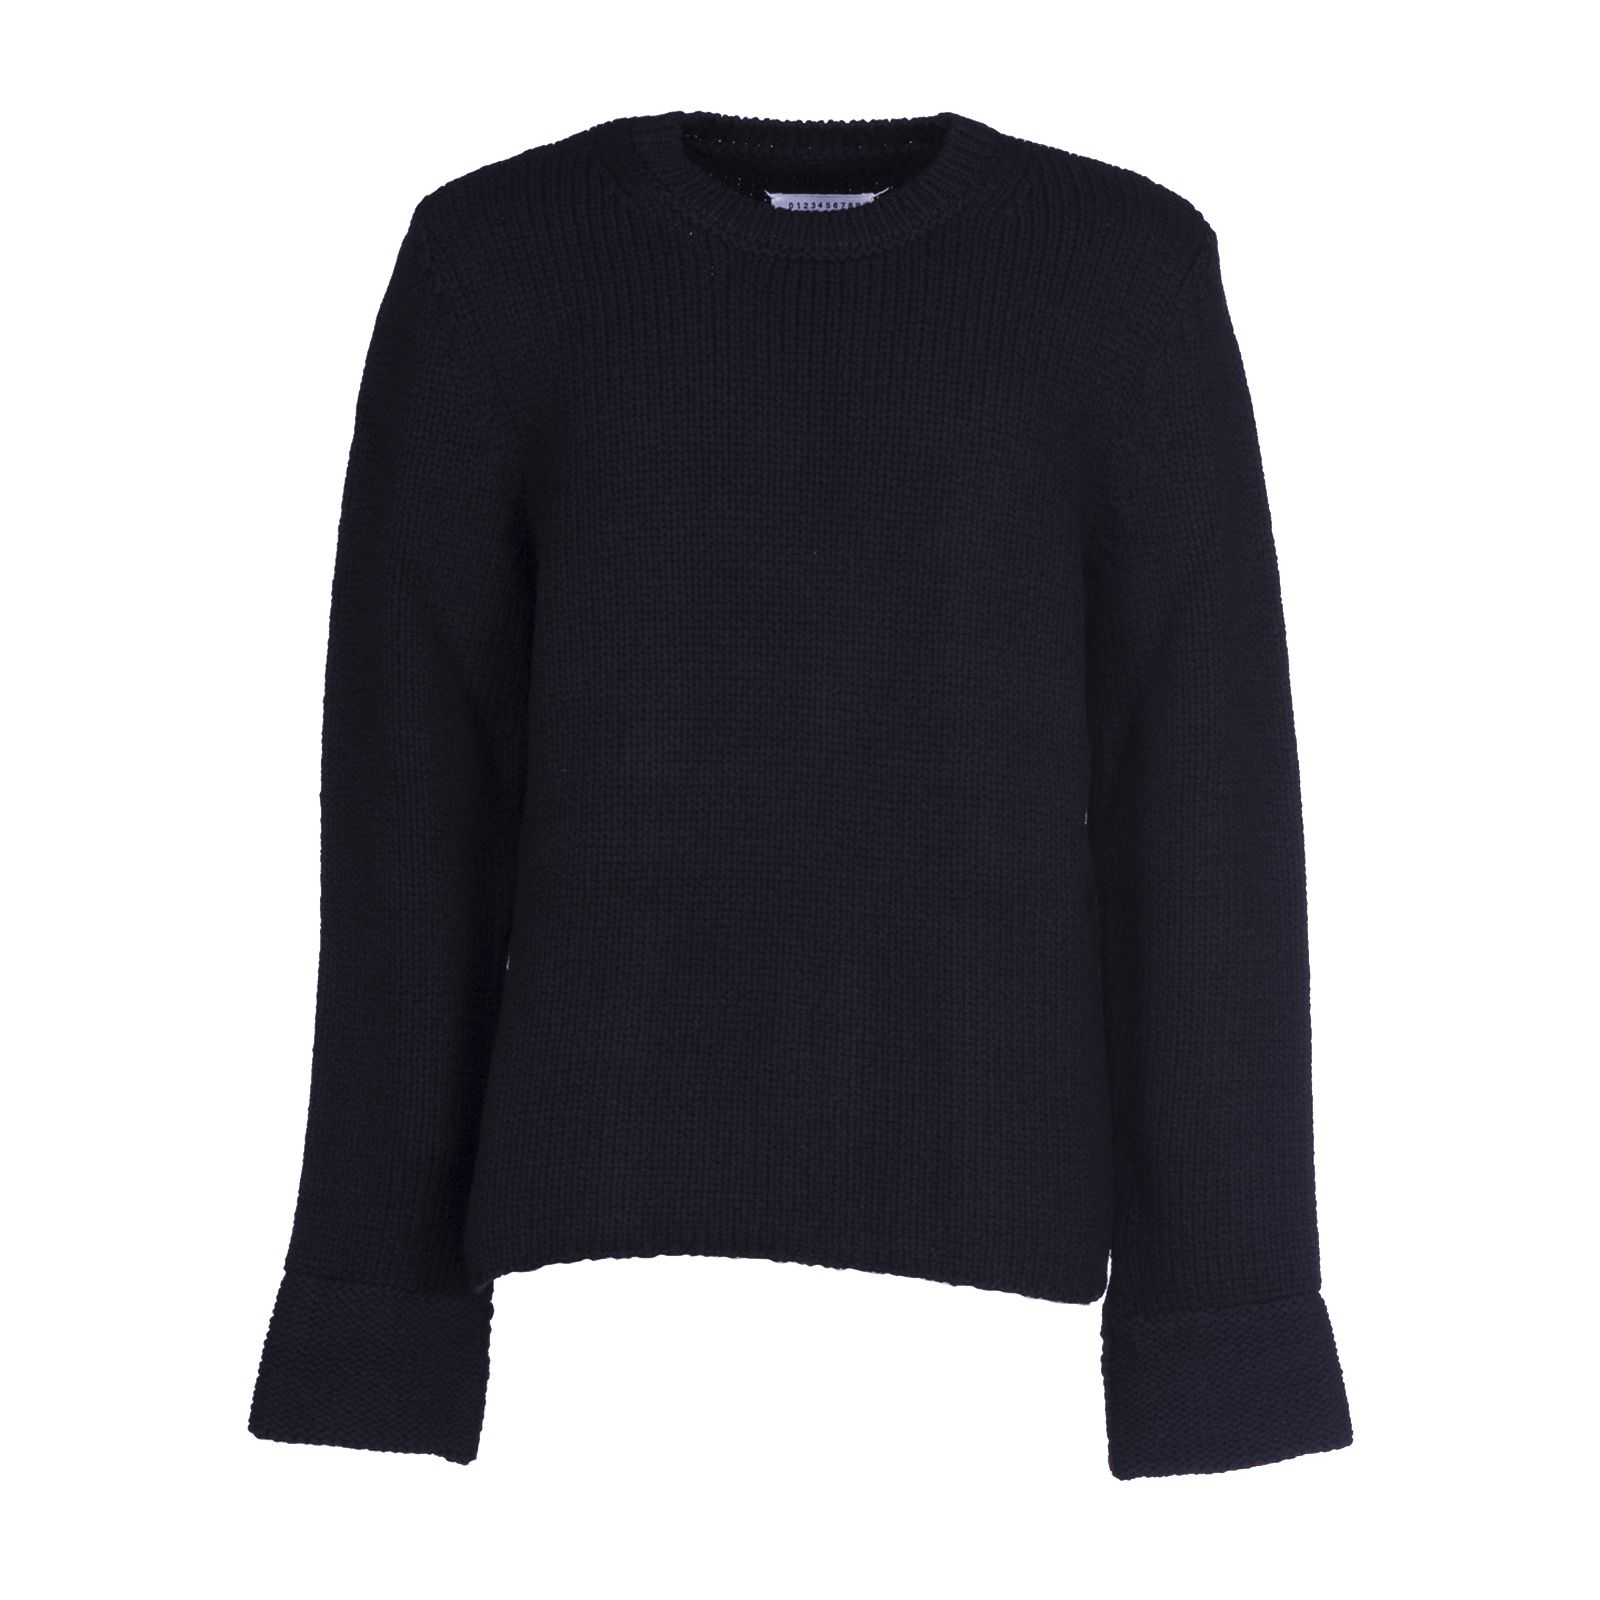 Maison Margiela Knitted Pullover